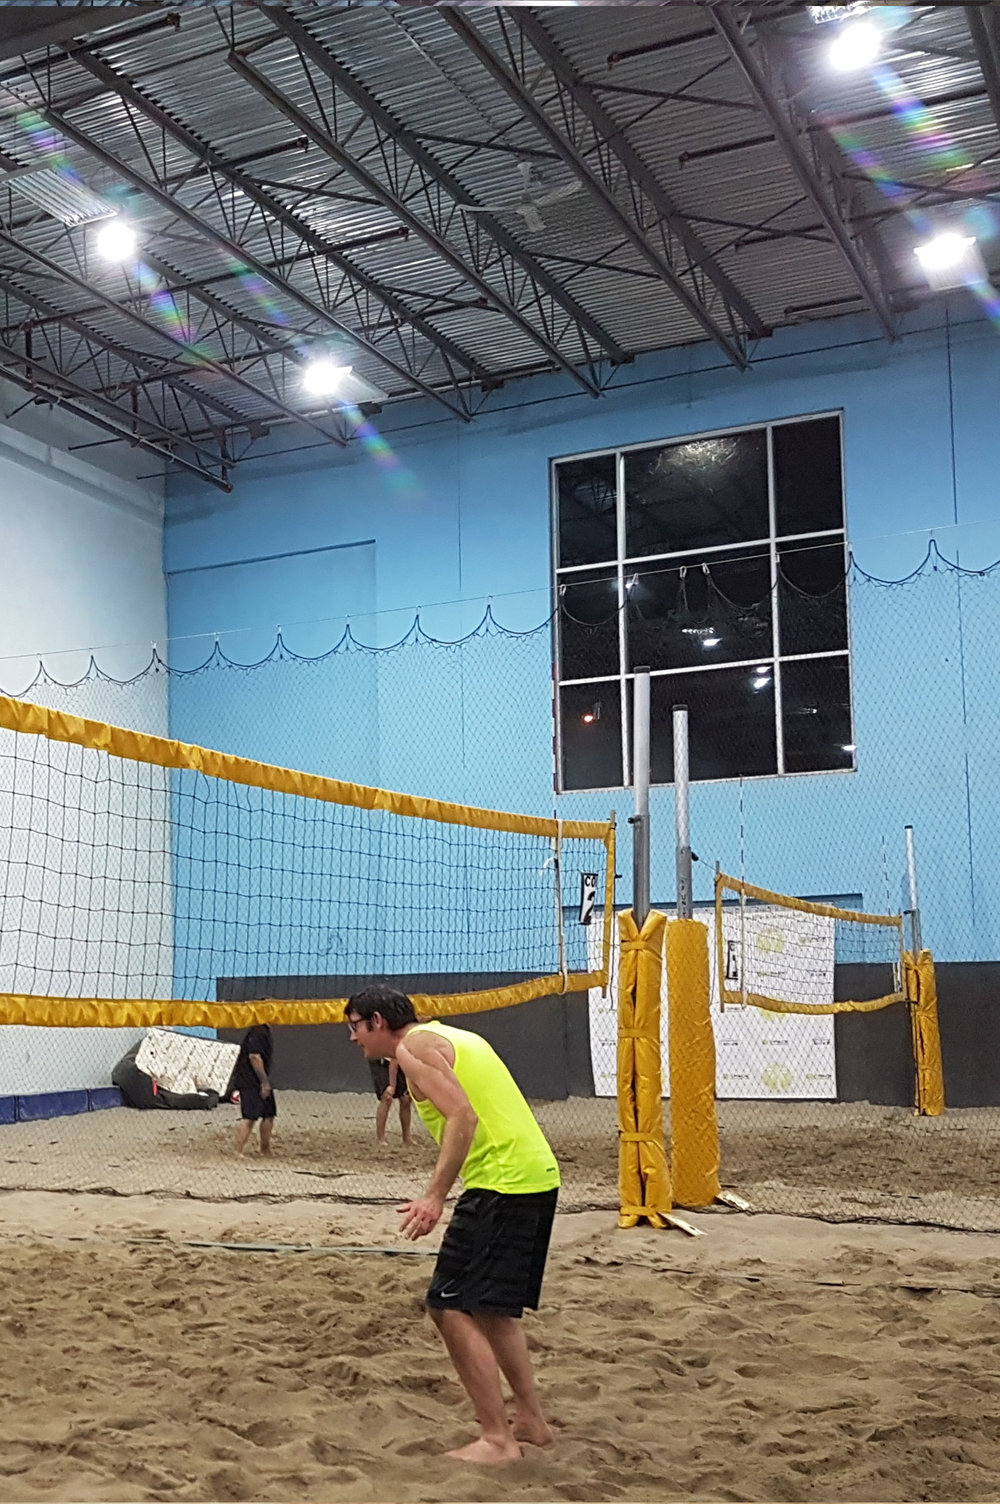 6PackVolleyBallCourt3.jpg